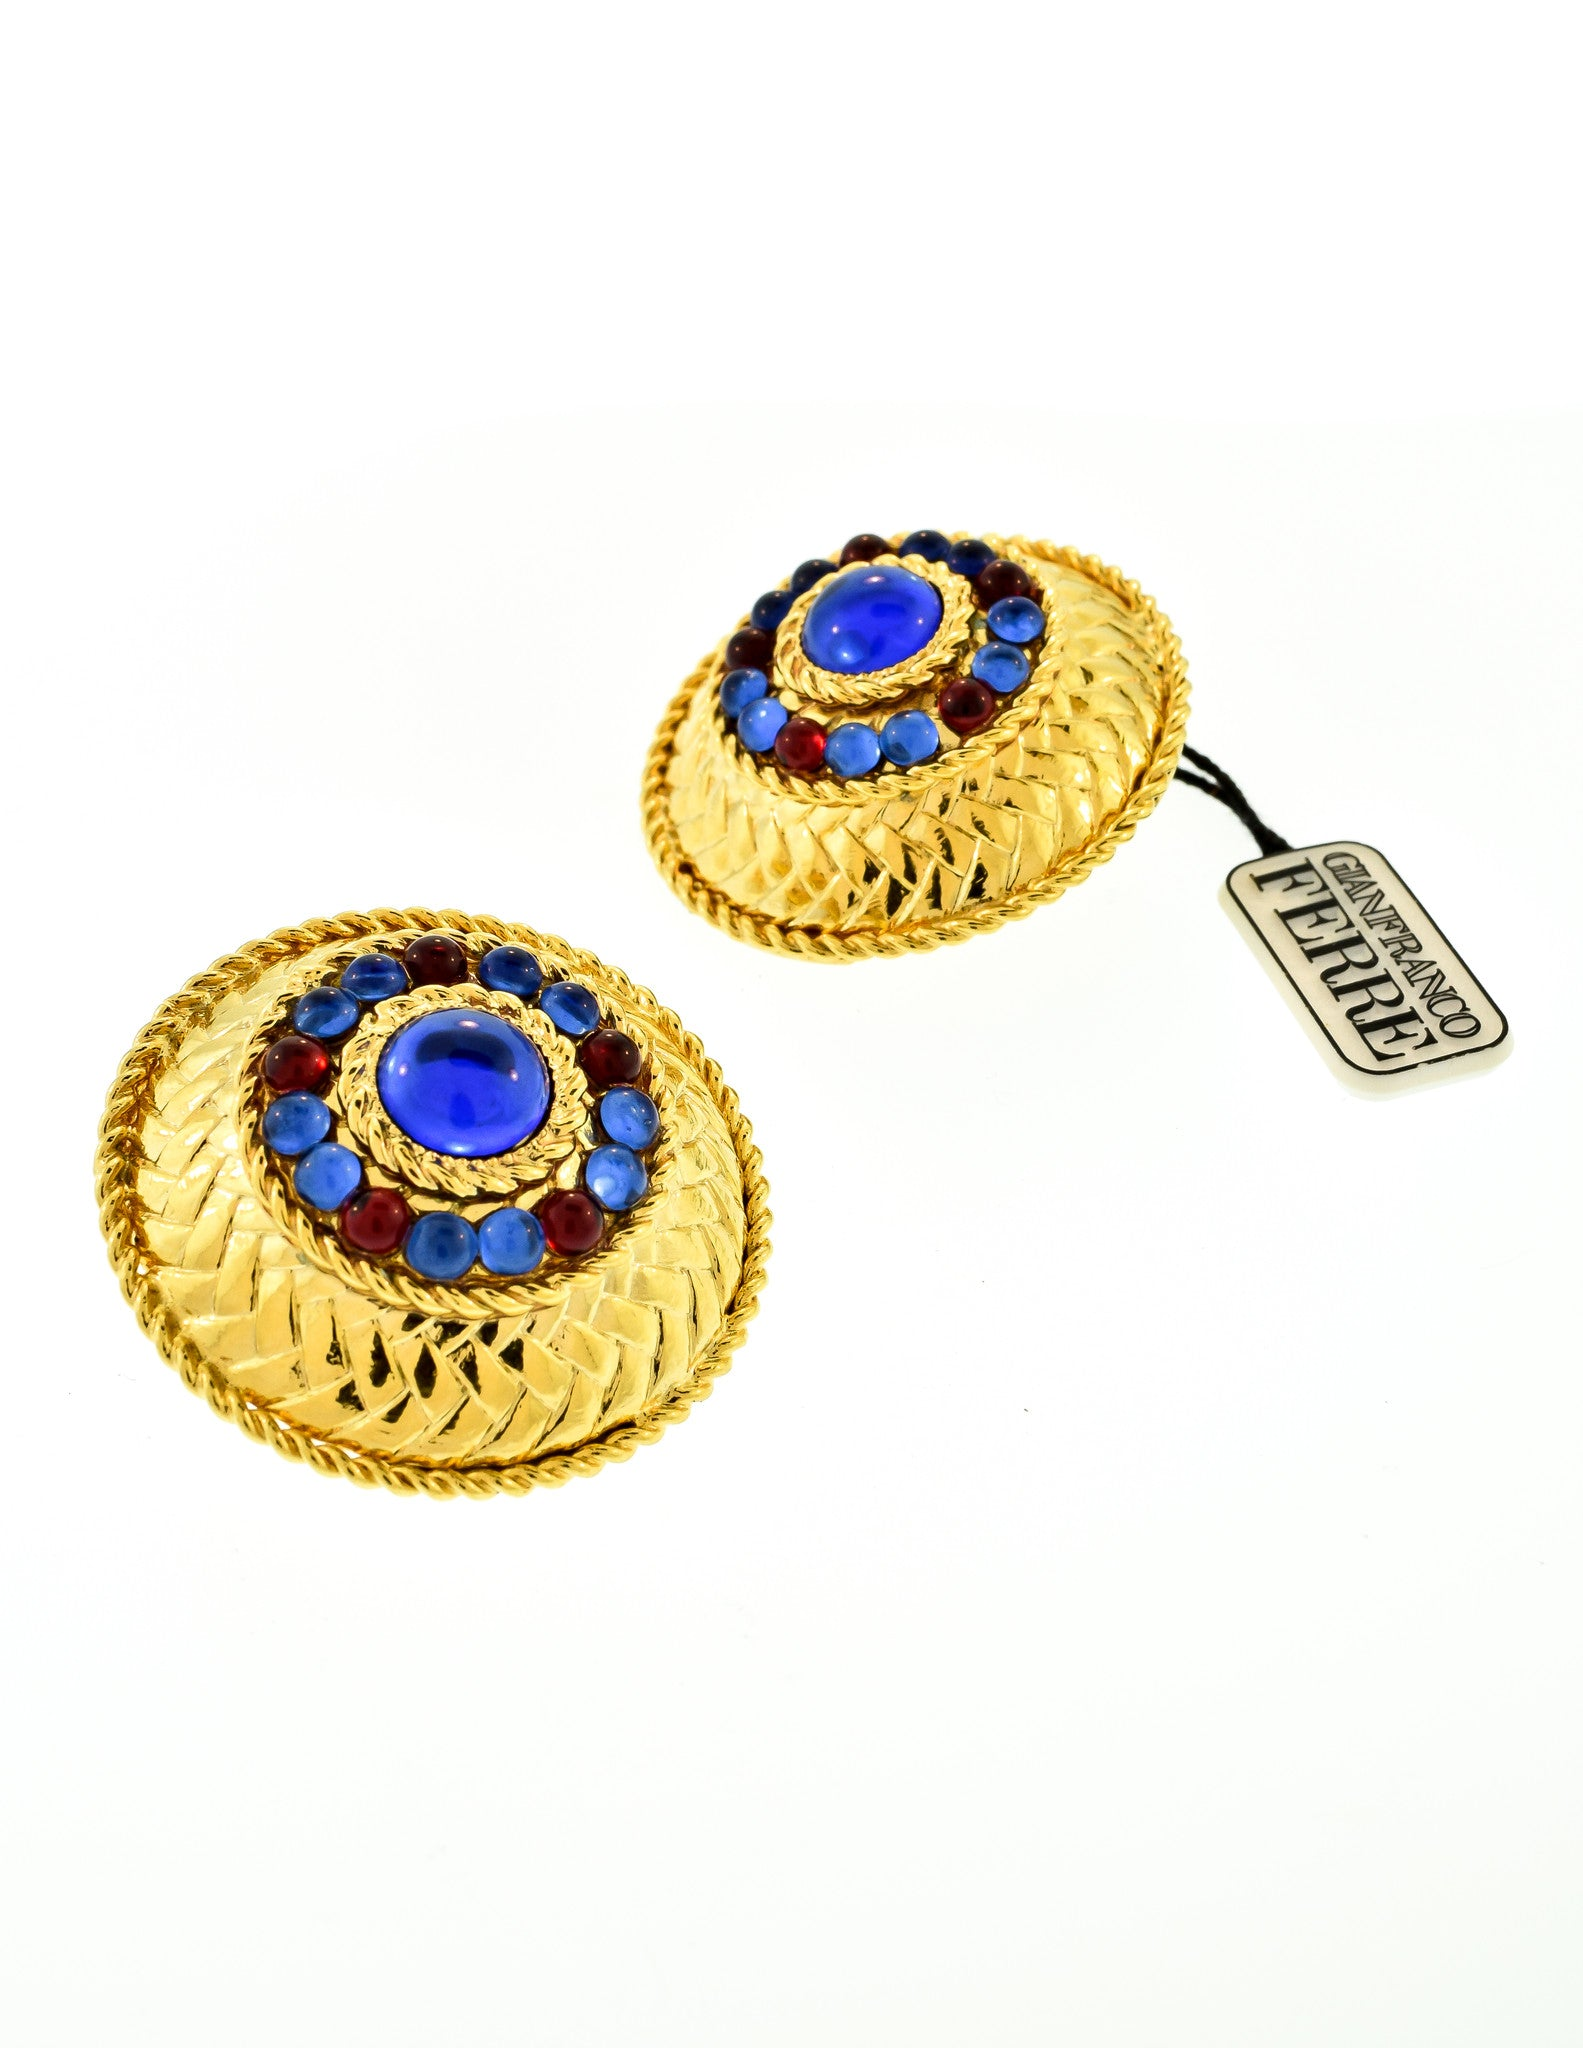 Gianfranco Ferré Vintage Gold Blue & Red Rhinestone Earrings  Amarcord  Vintage Fashion  3